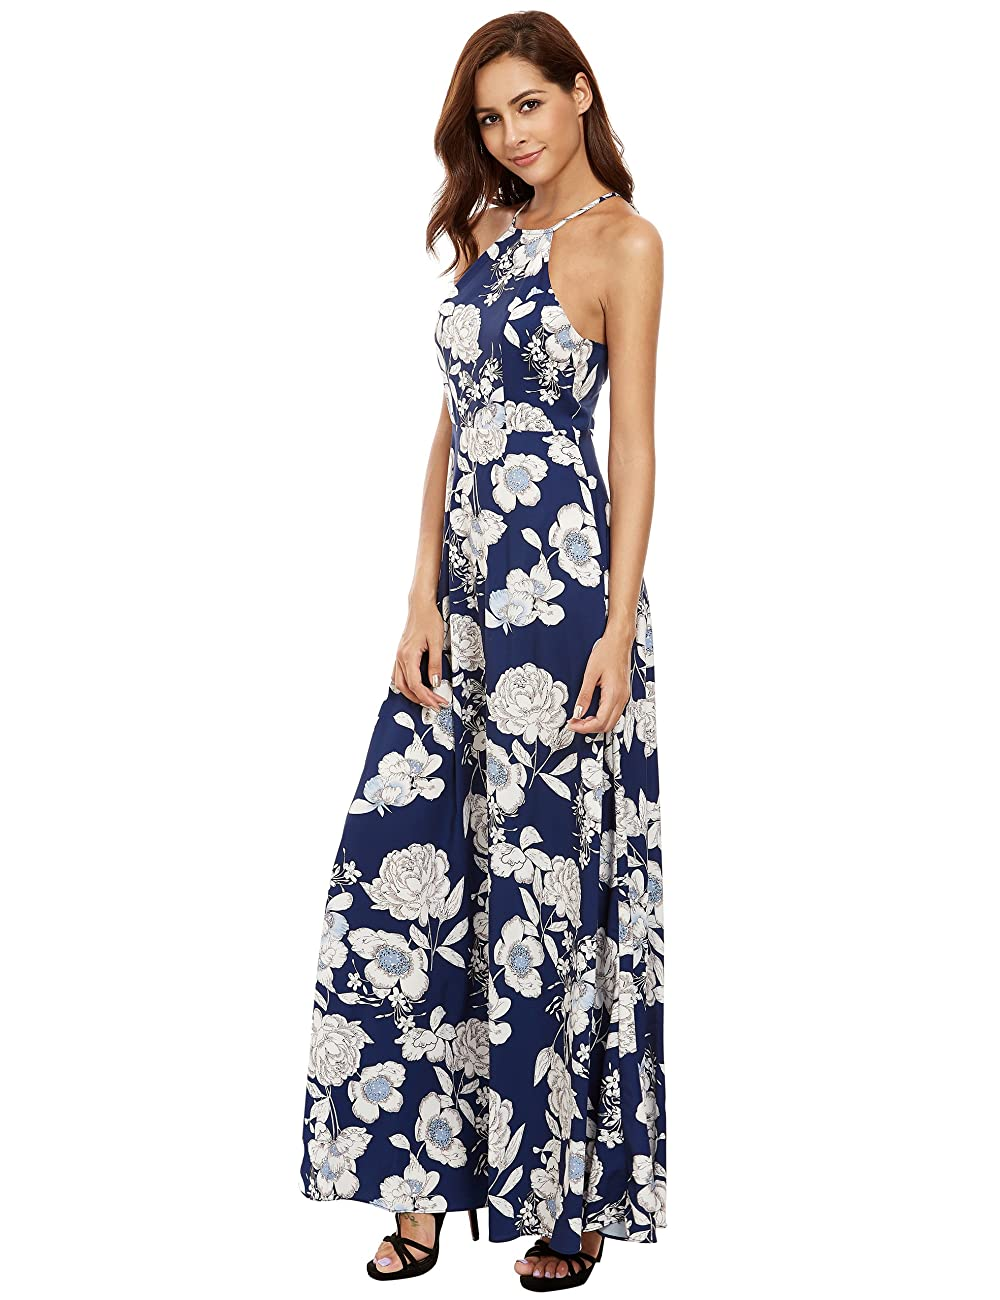 Floerns Women's Sleeveless Halter Neck Vintage Floral Print Maxi Dress 0